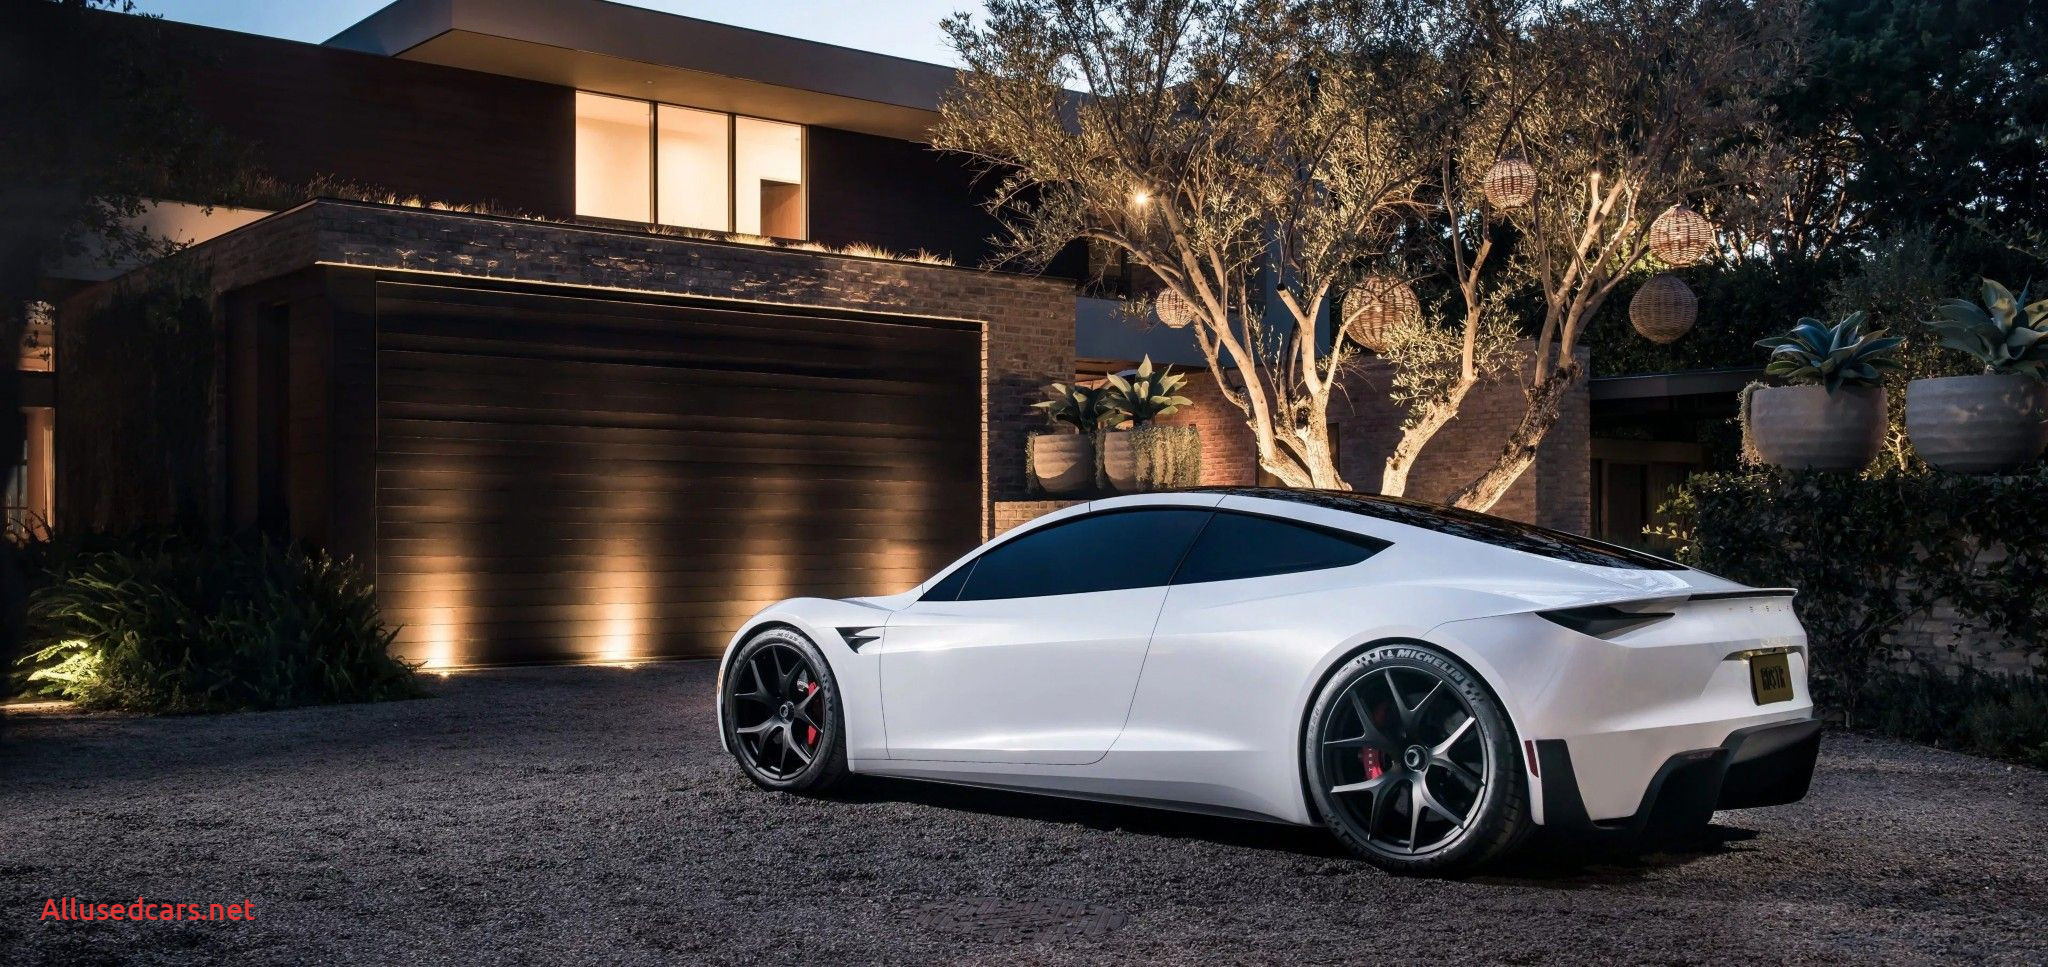 Spacex Tesla Roadster Beautiful Tesla S Roadster In White with Background